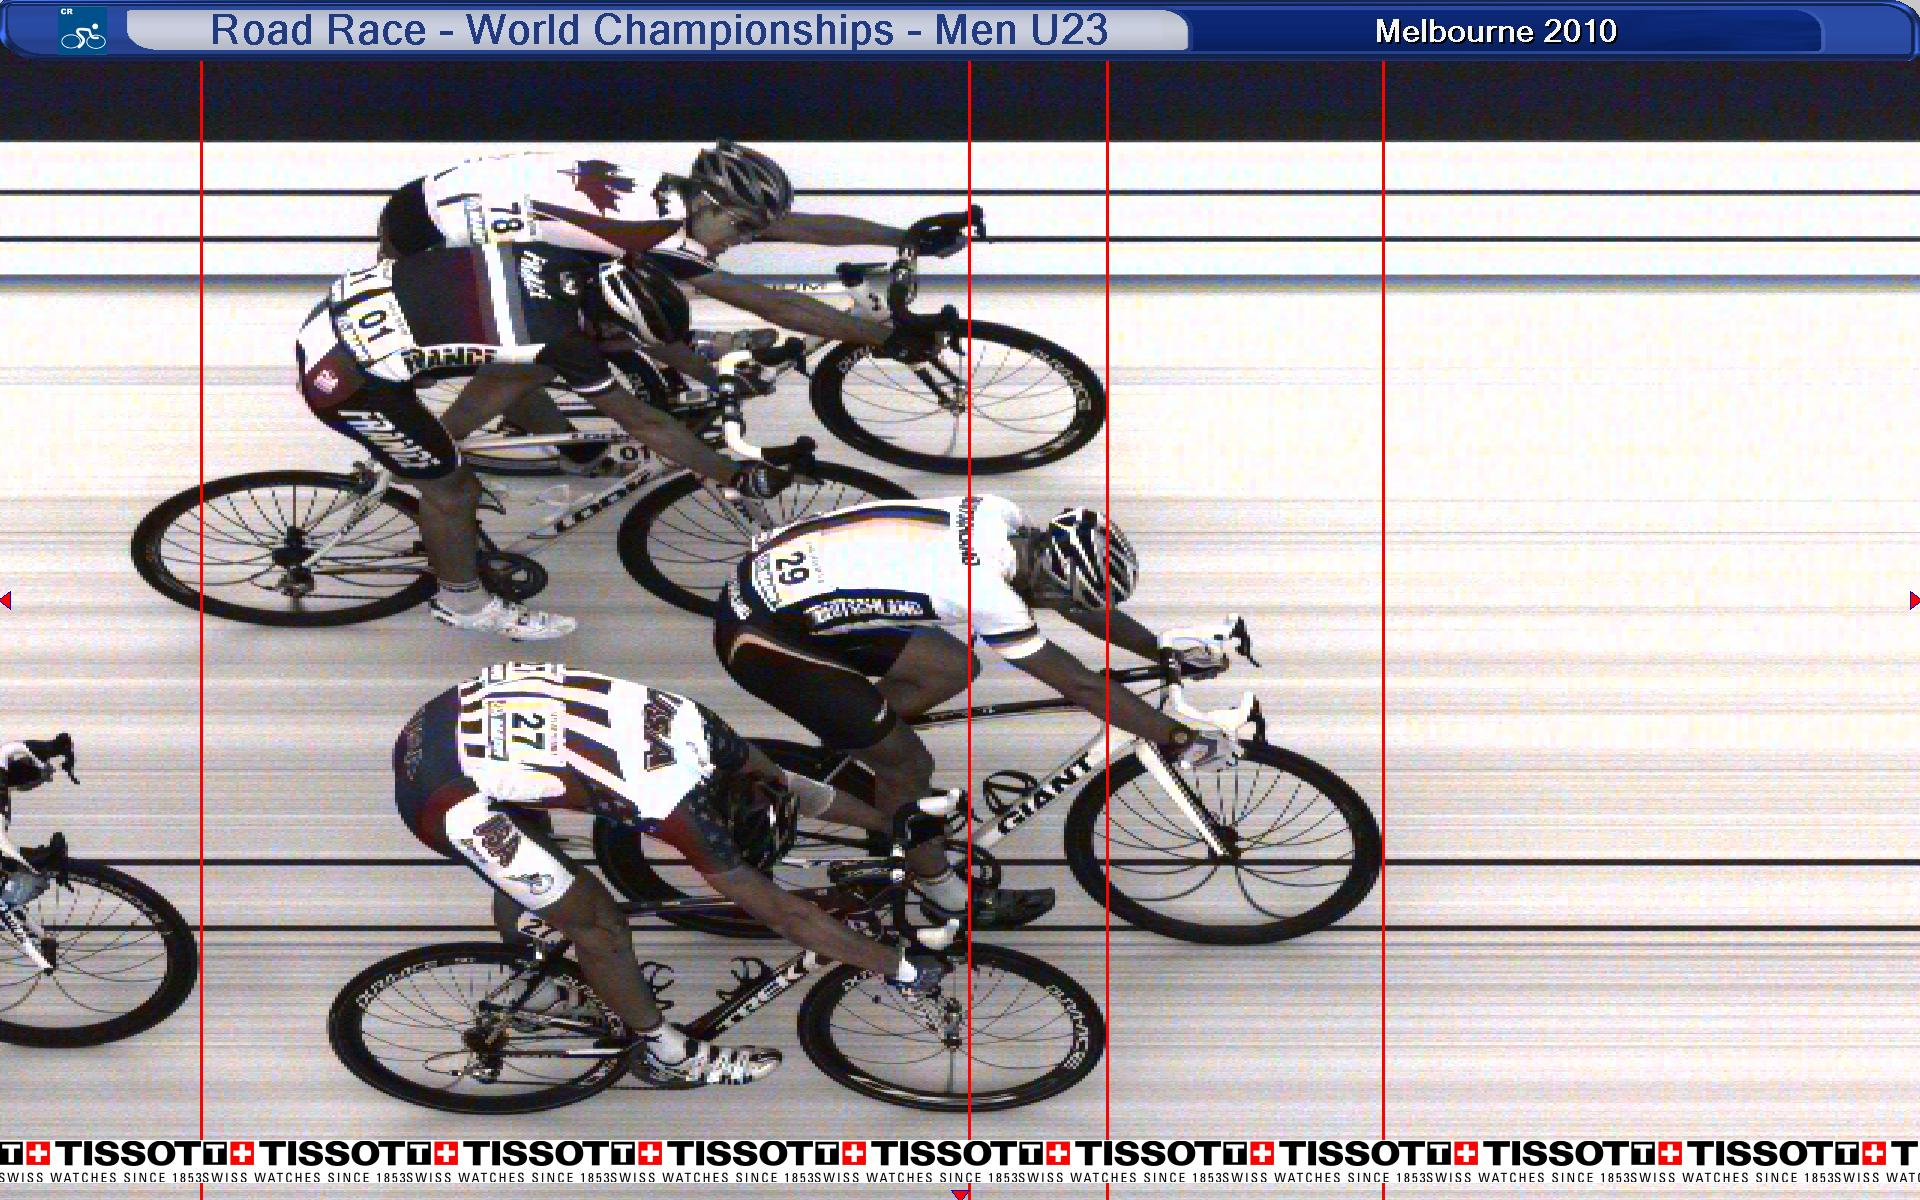 photo finish, under 23 road race, world champs, geelong, australia